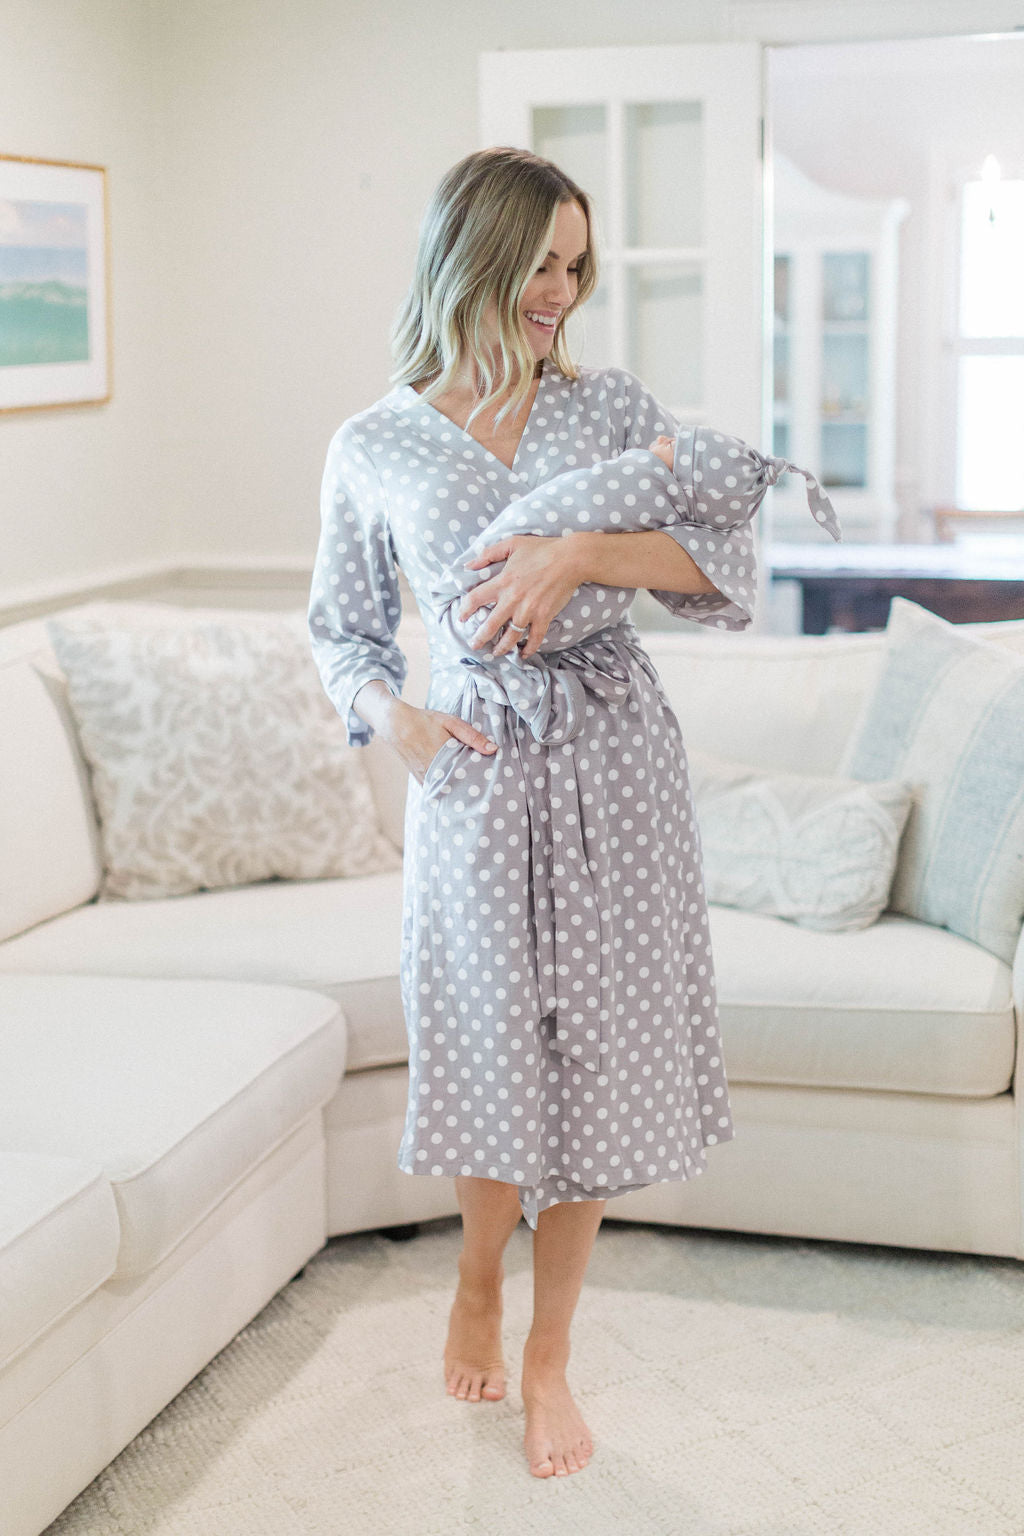 Kimono Mommy and me robe and swaddle set Maternity robe and swaddle set boy or girl Swaddle blanket Mermaids. Organic stretch cotton